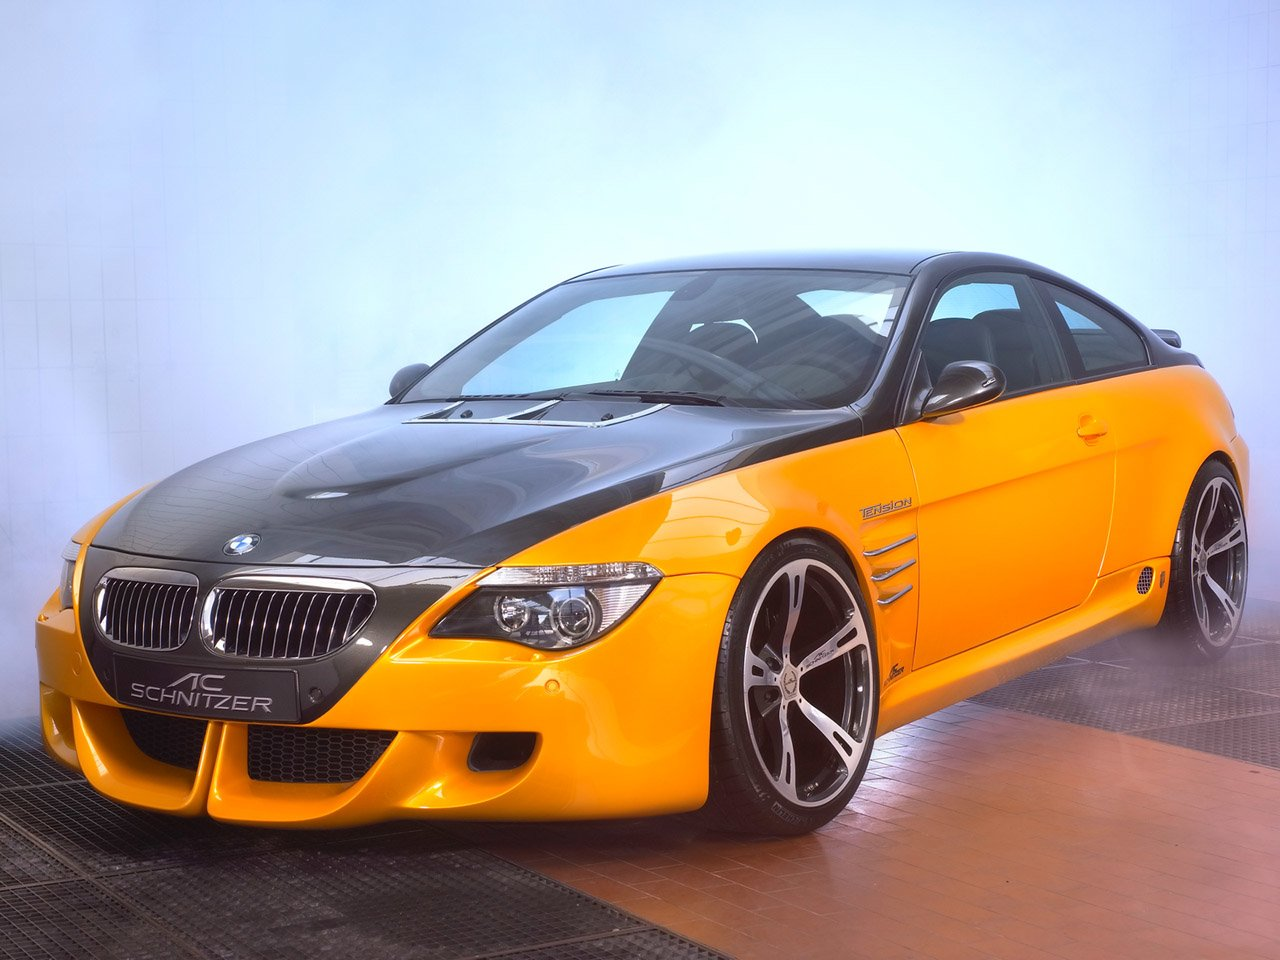 New Free Desktop Wallpapers Backgrounds Bmw Car Wallpapers On This Month